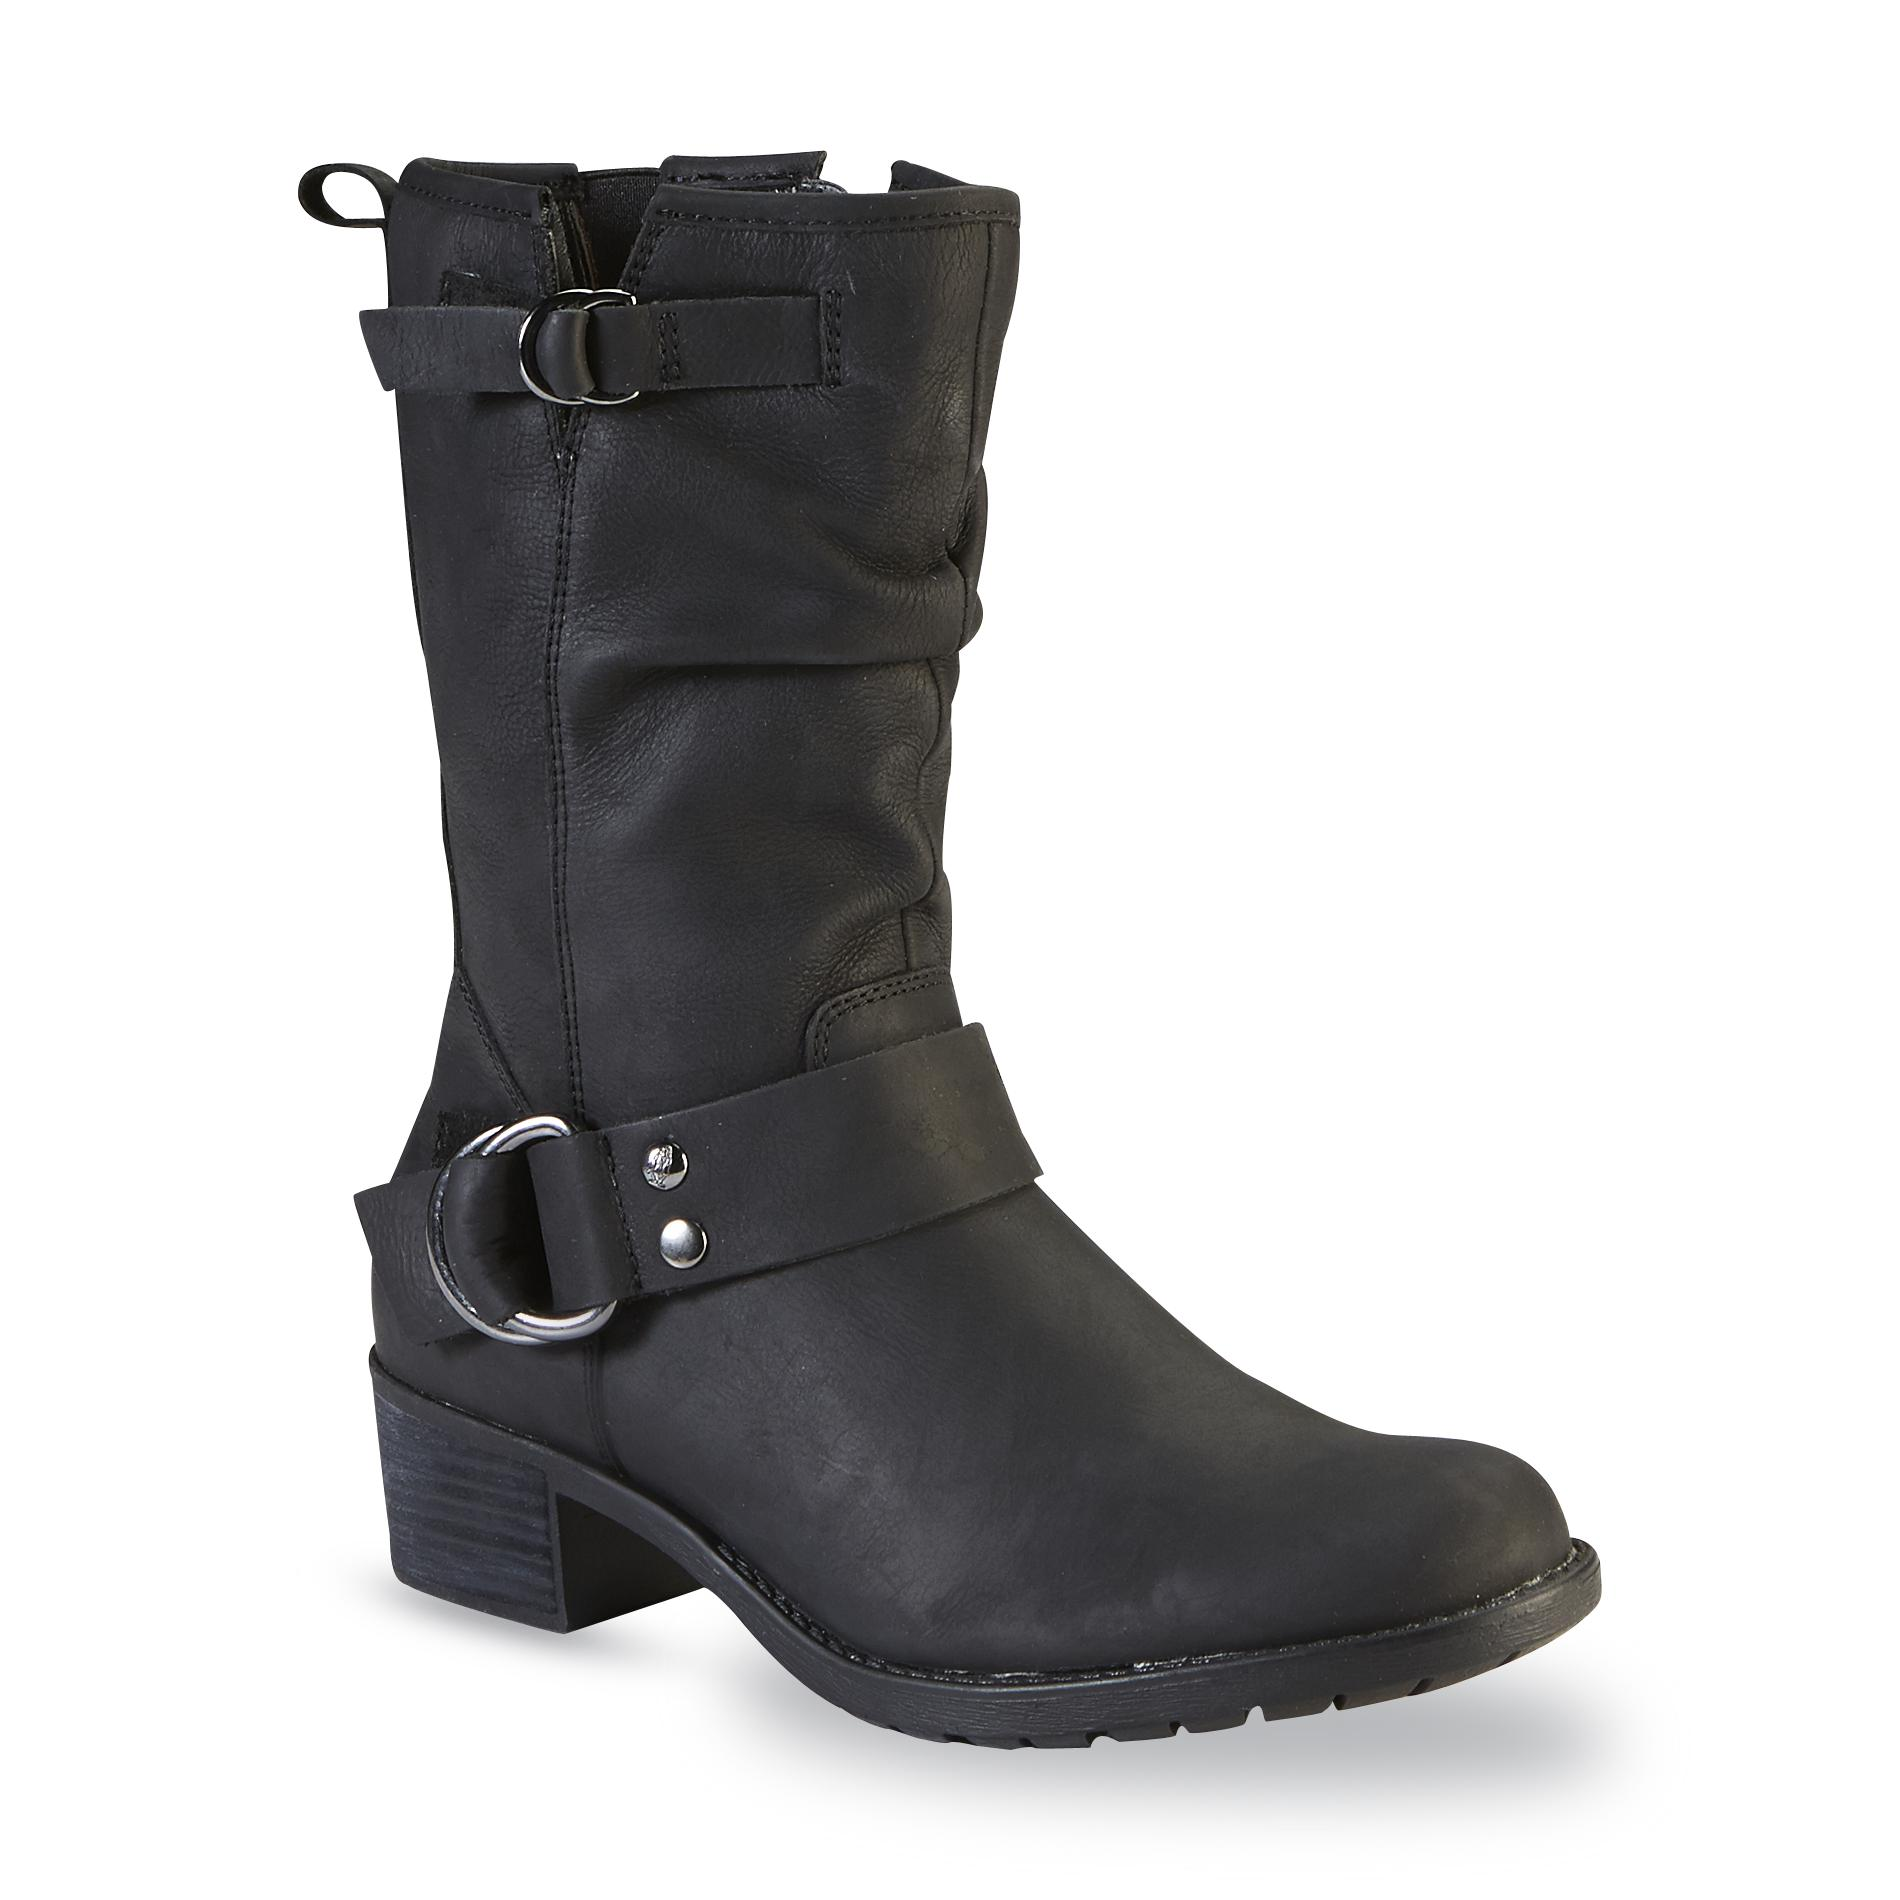 Hush Puppies Women S Emelee Overton Black Leather Mid Calf